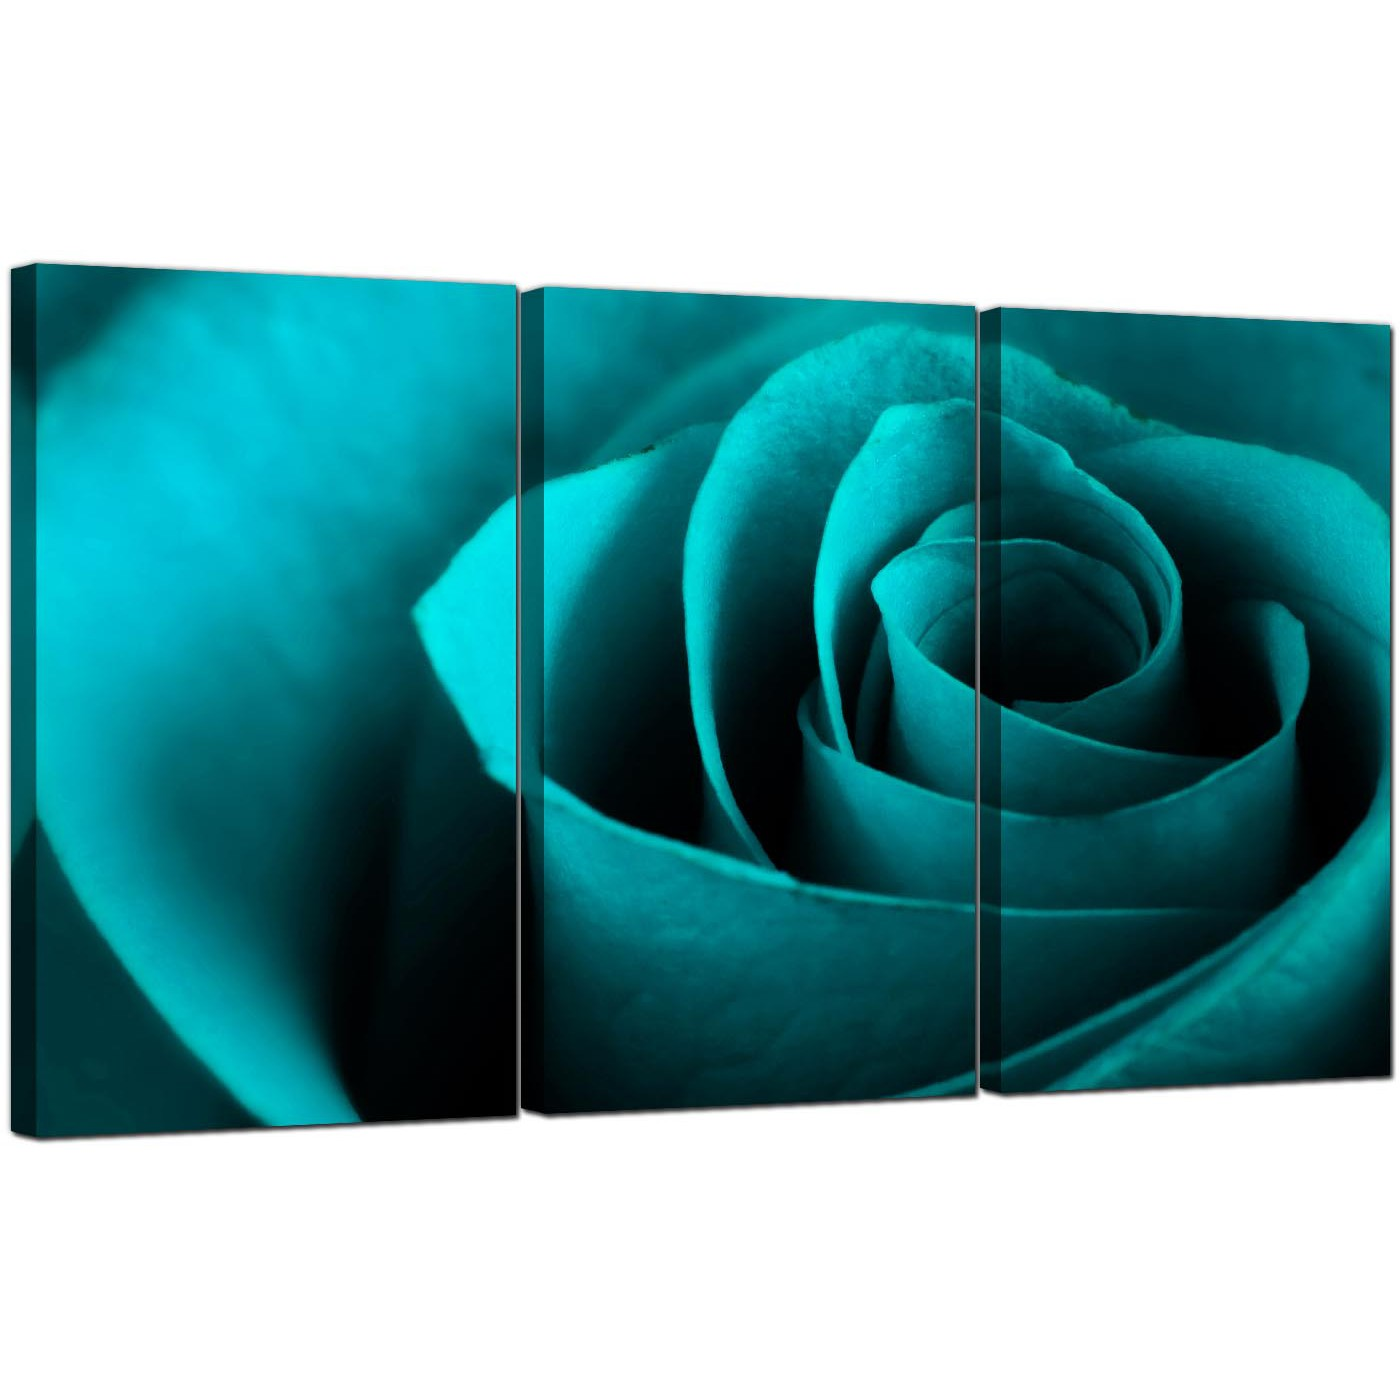 Rose Canvas Art Set Of 3 For Your Living Room